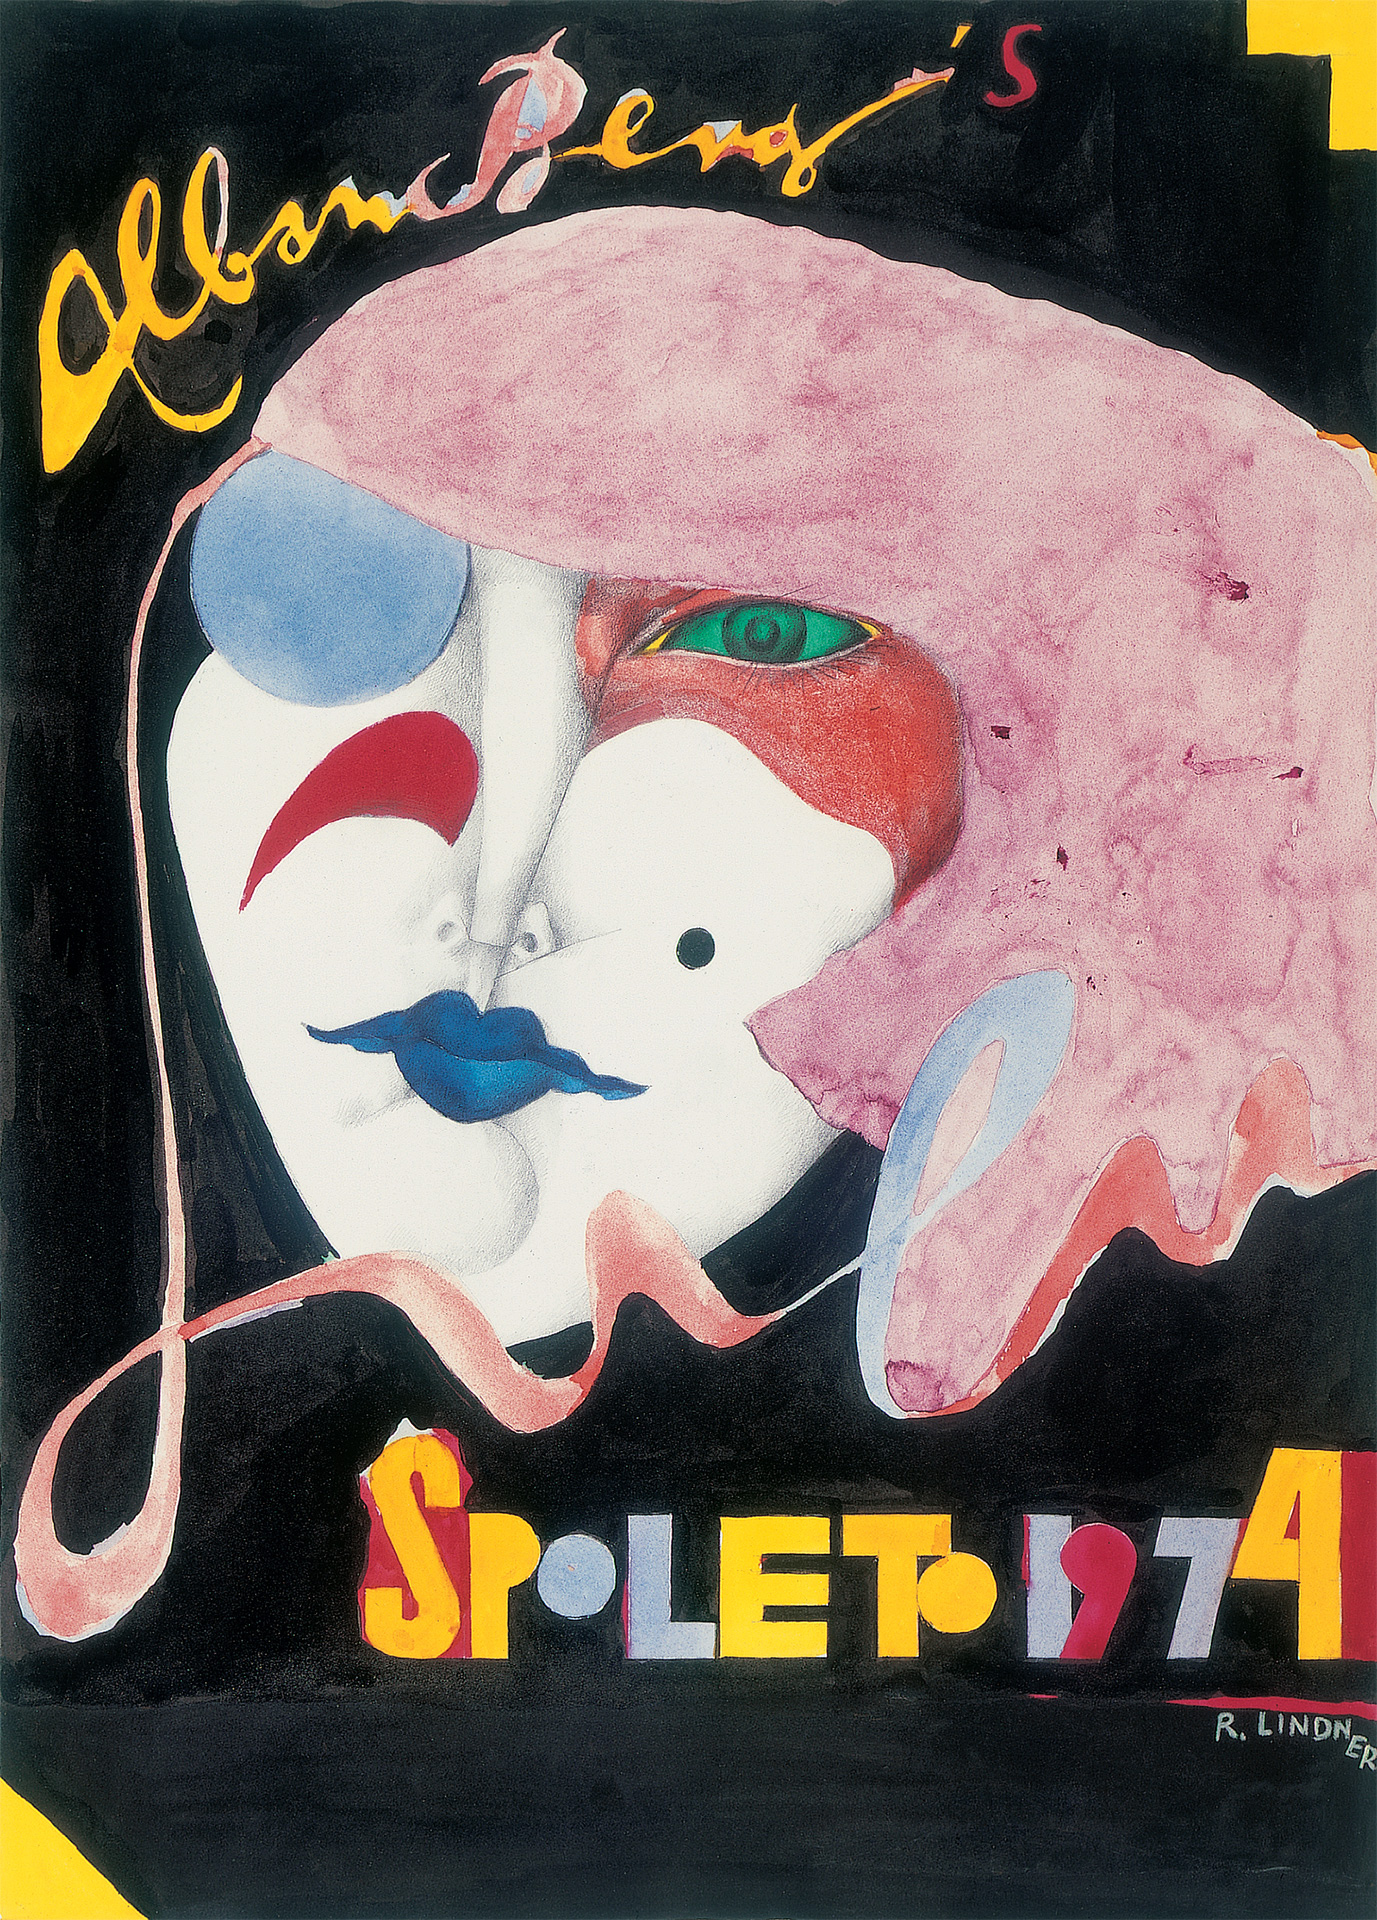 Spoleto (Alban Berg), 1974 grand format